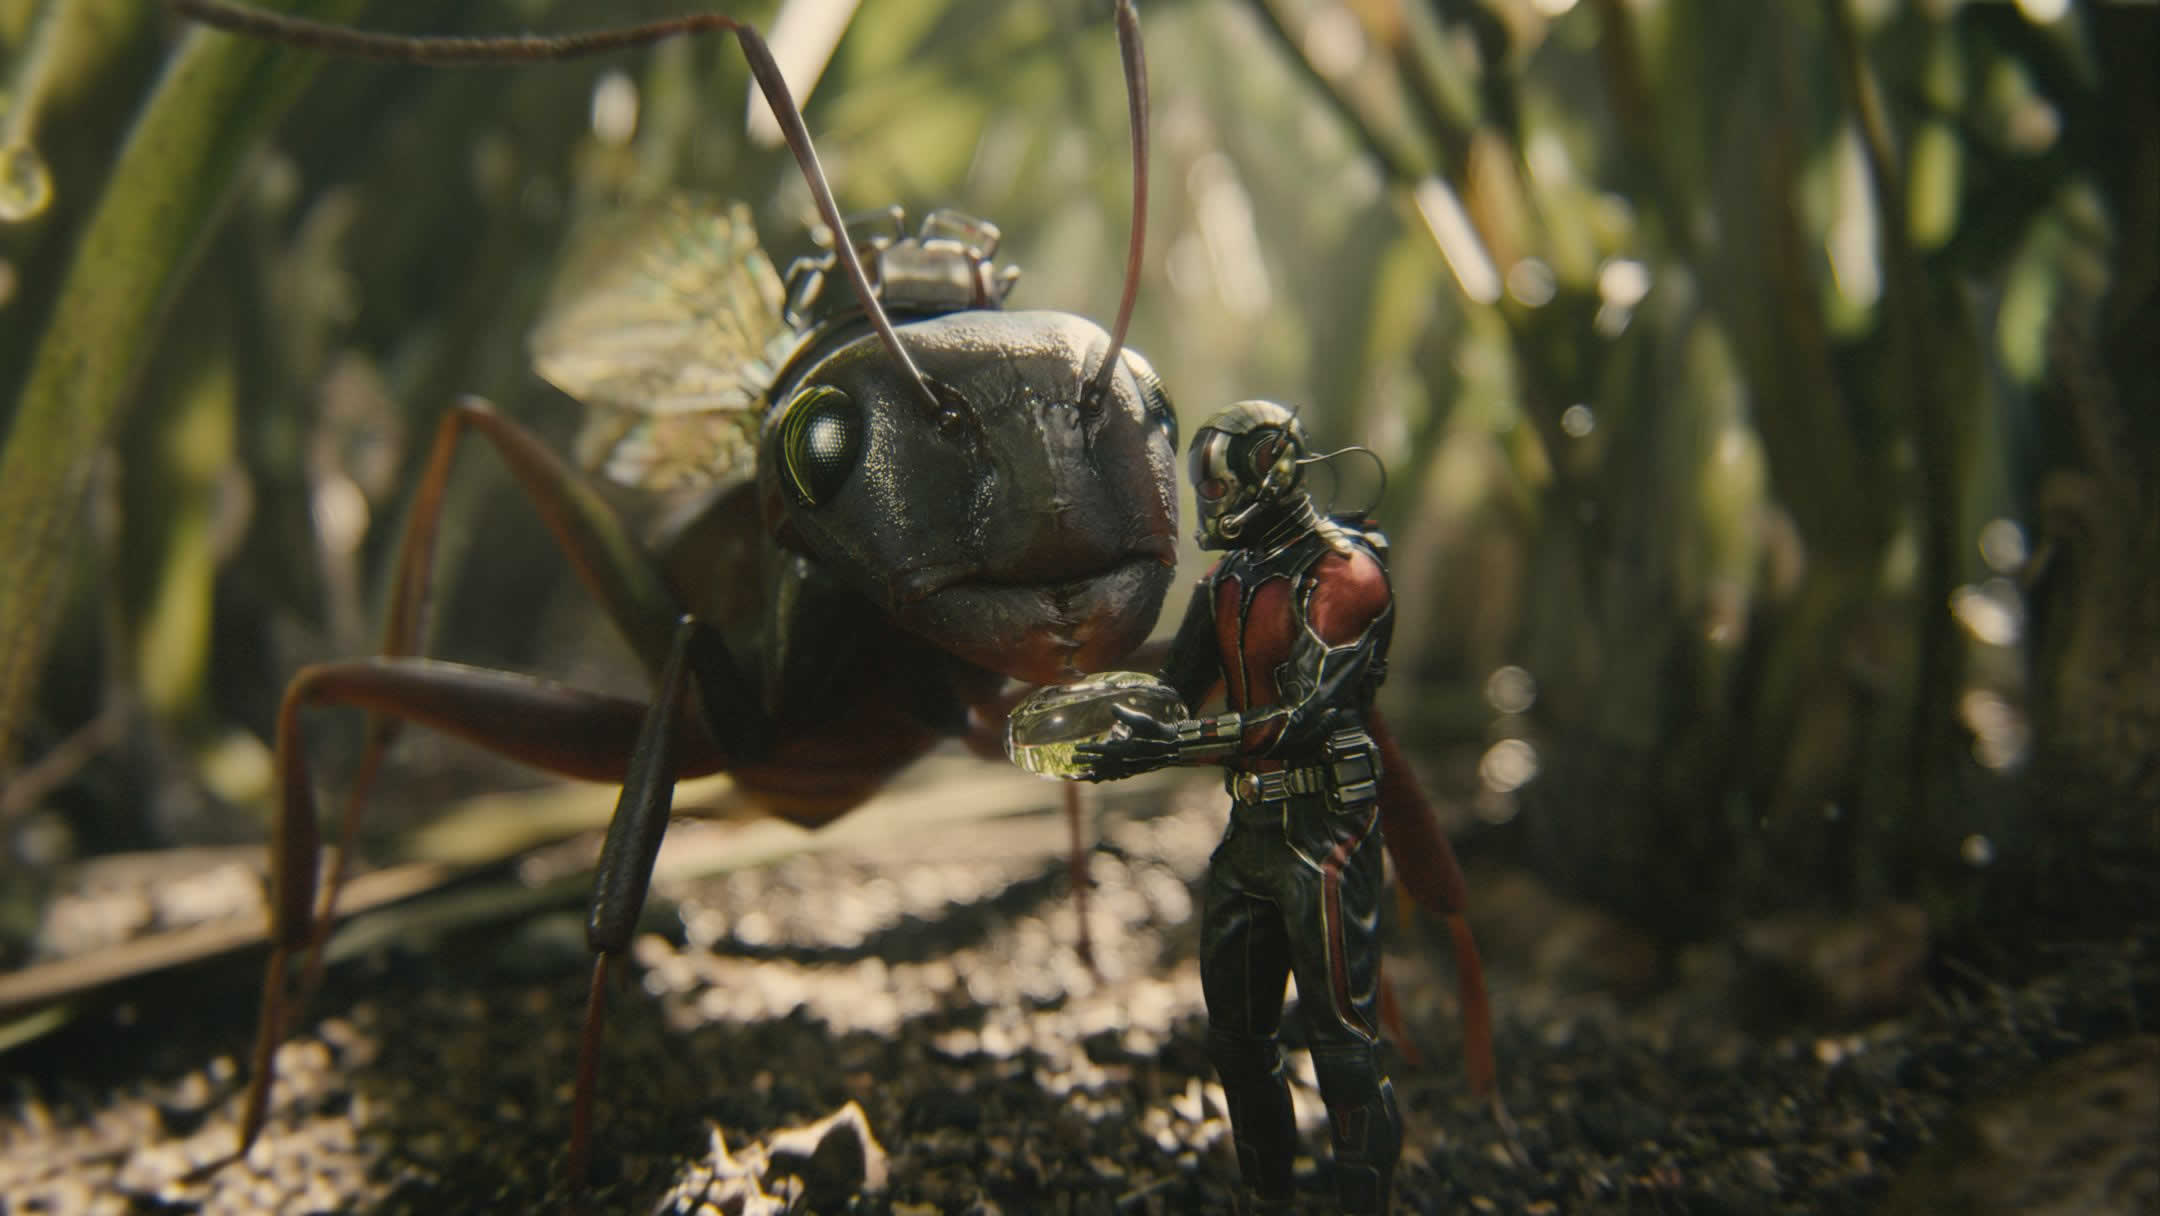 VK.962: Ant Wallpapers